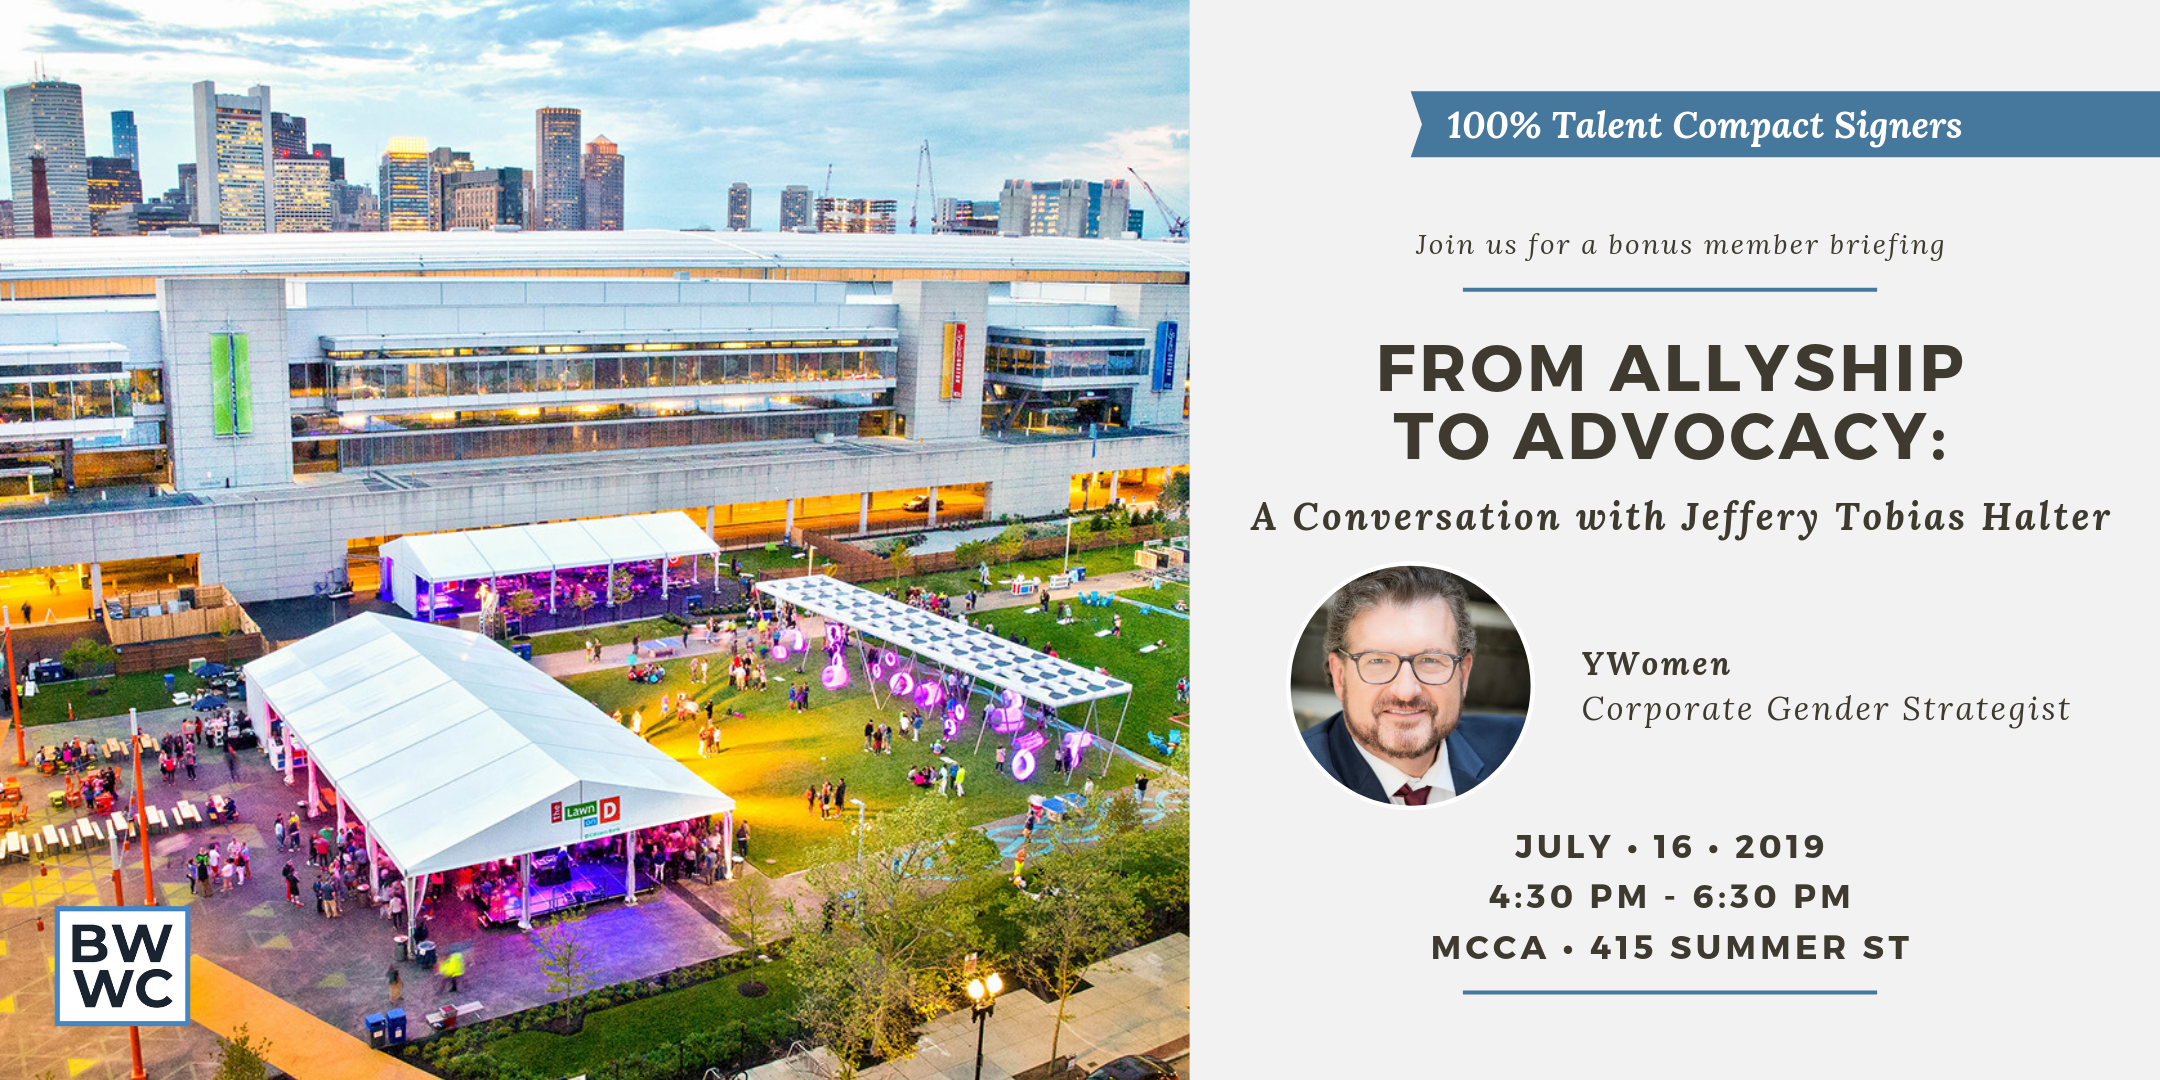 Join us:  We are thrilled to welcome our 100% Talent Compact Members for a special bonus member briefing this summer, July 16th:  Male Allies in the Workplace - From Allyship to Advocacy .    More details below: